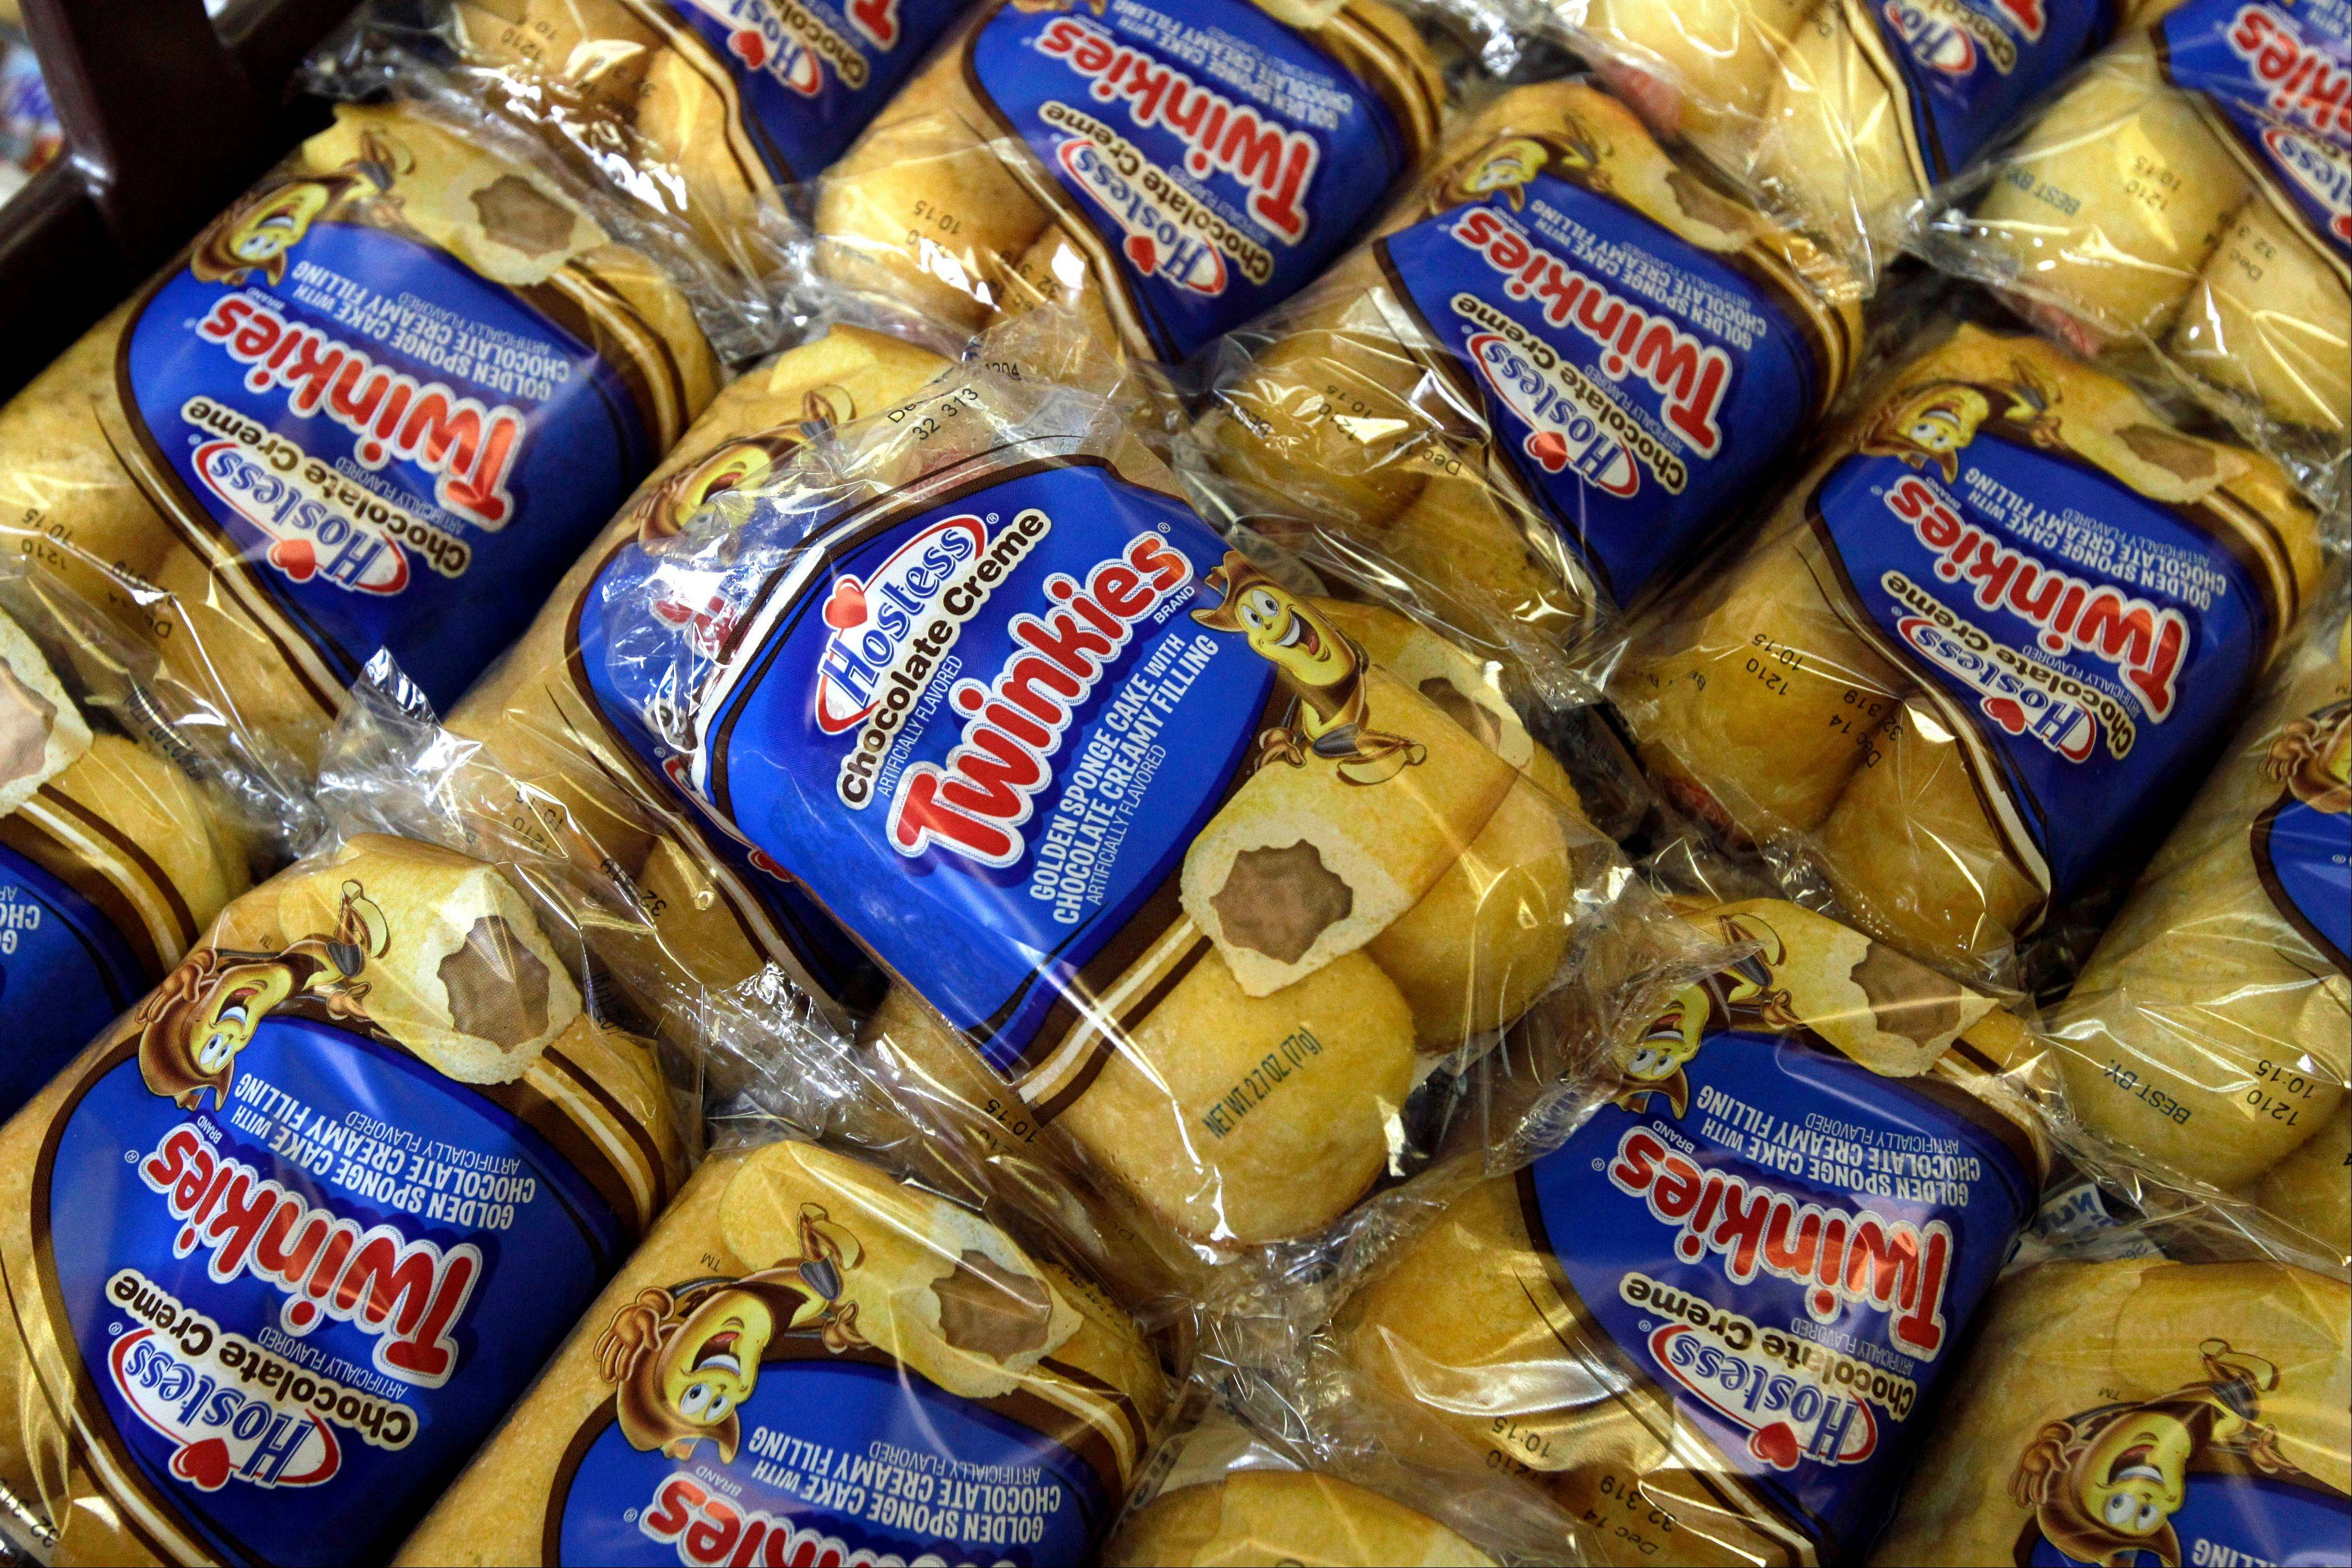 A bankruptcy judge has approved the sale of Twinkies to a pair of investment firms, one of which has said it hopes to have the cakes back on shelves by summer.